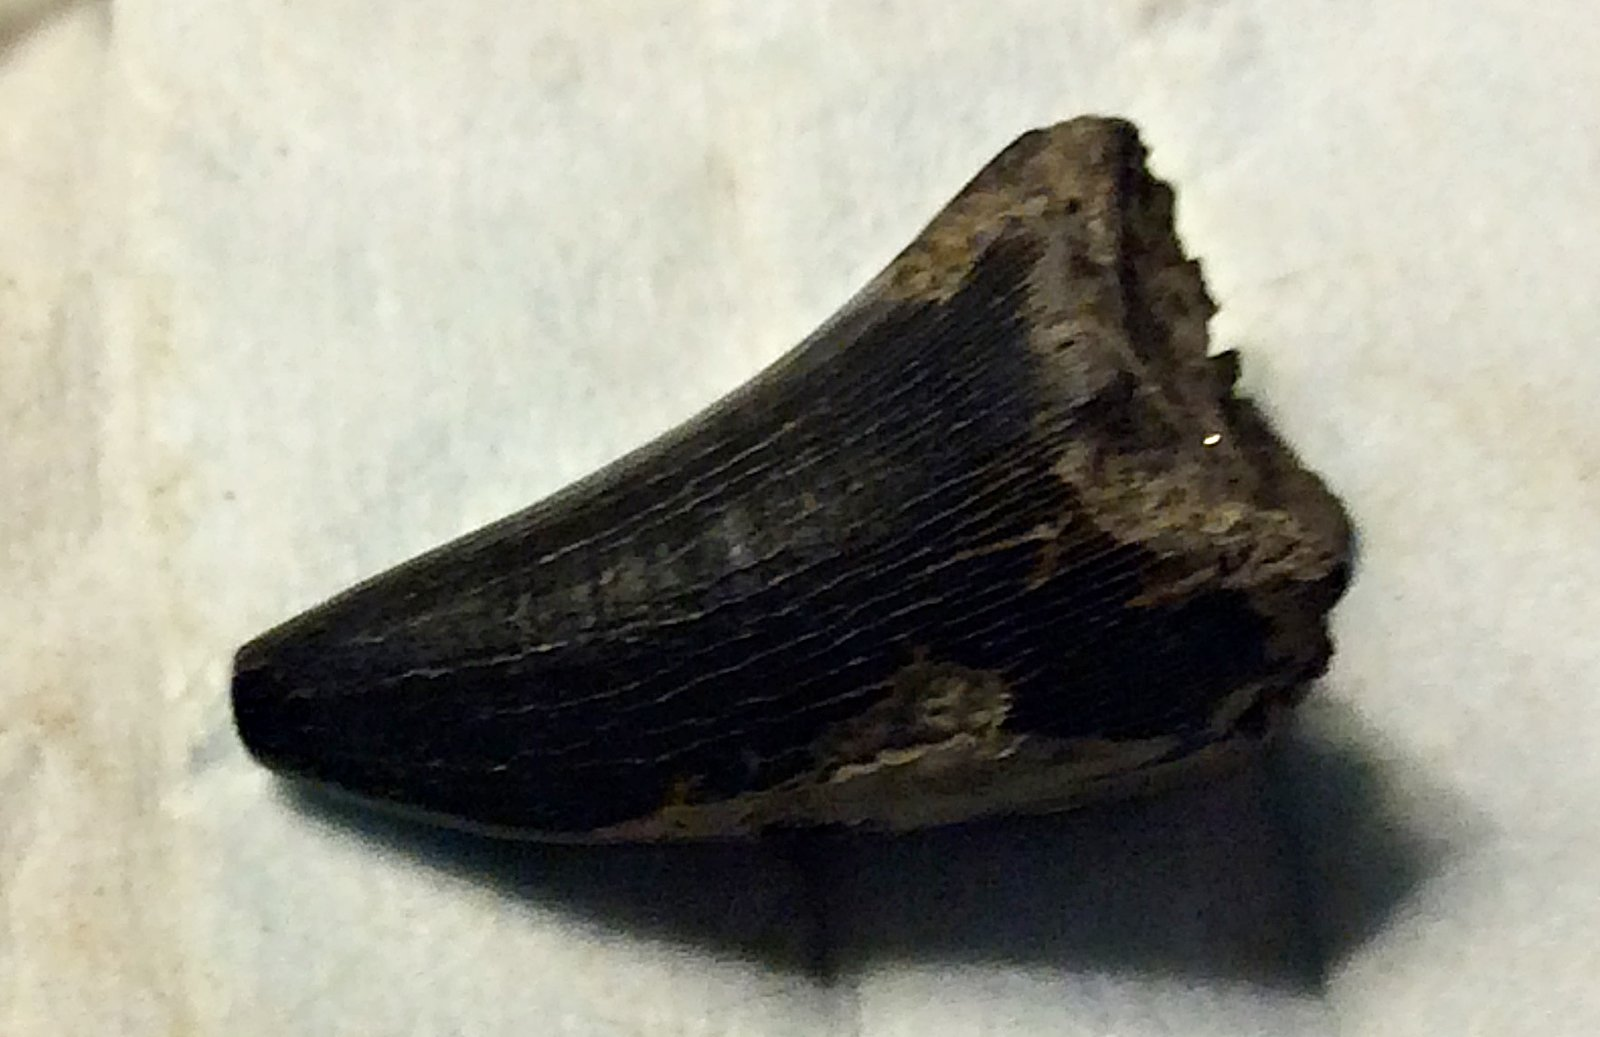 Mosasaur Tooth from Big Brook, N.J.